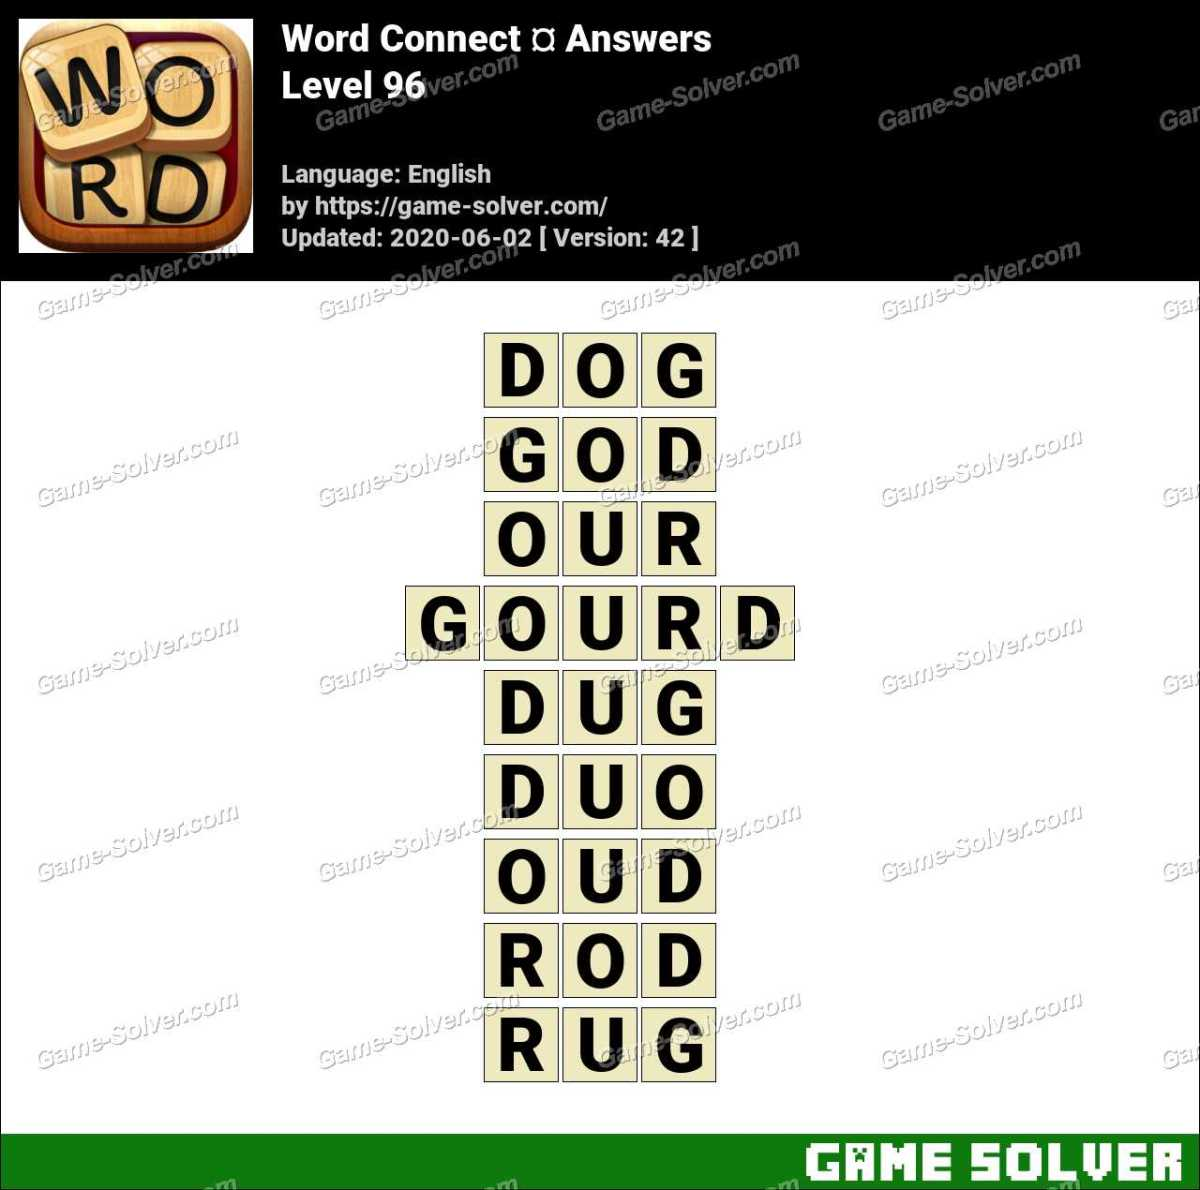 Word Connect Level 96 Answers